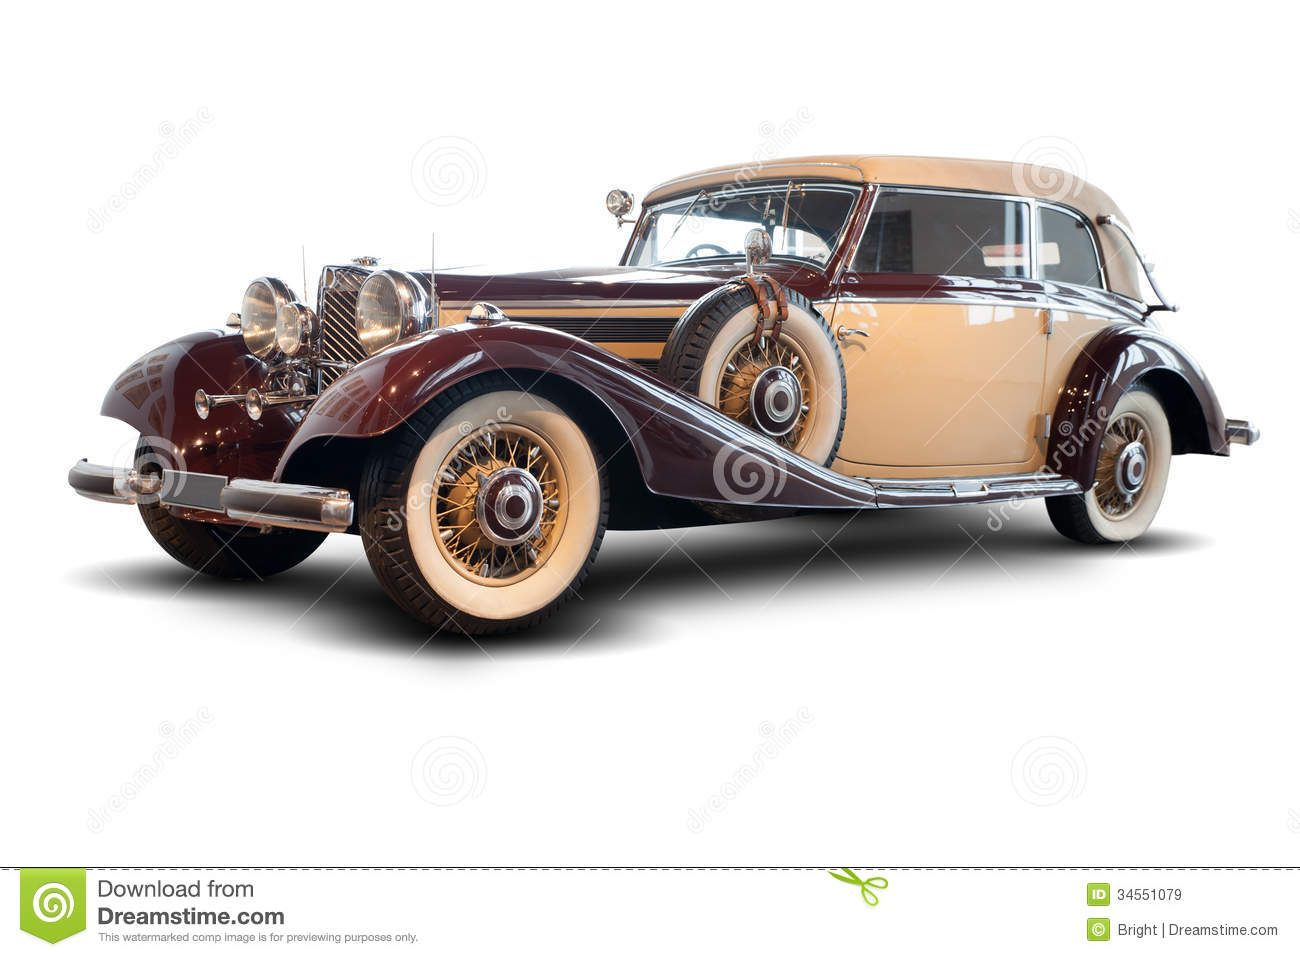 Mercedes 540K model from 1930s. Only a couple of hundred of vehicles ...